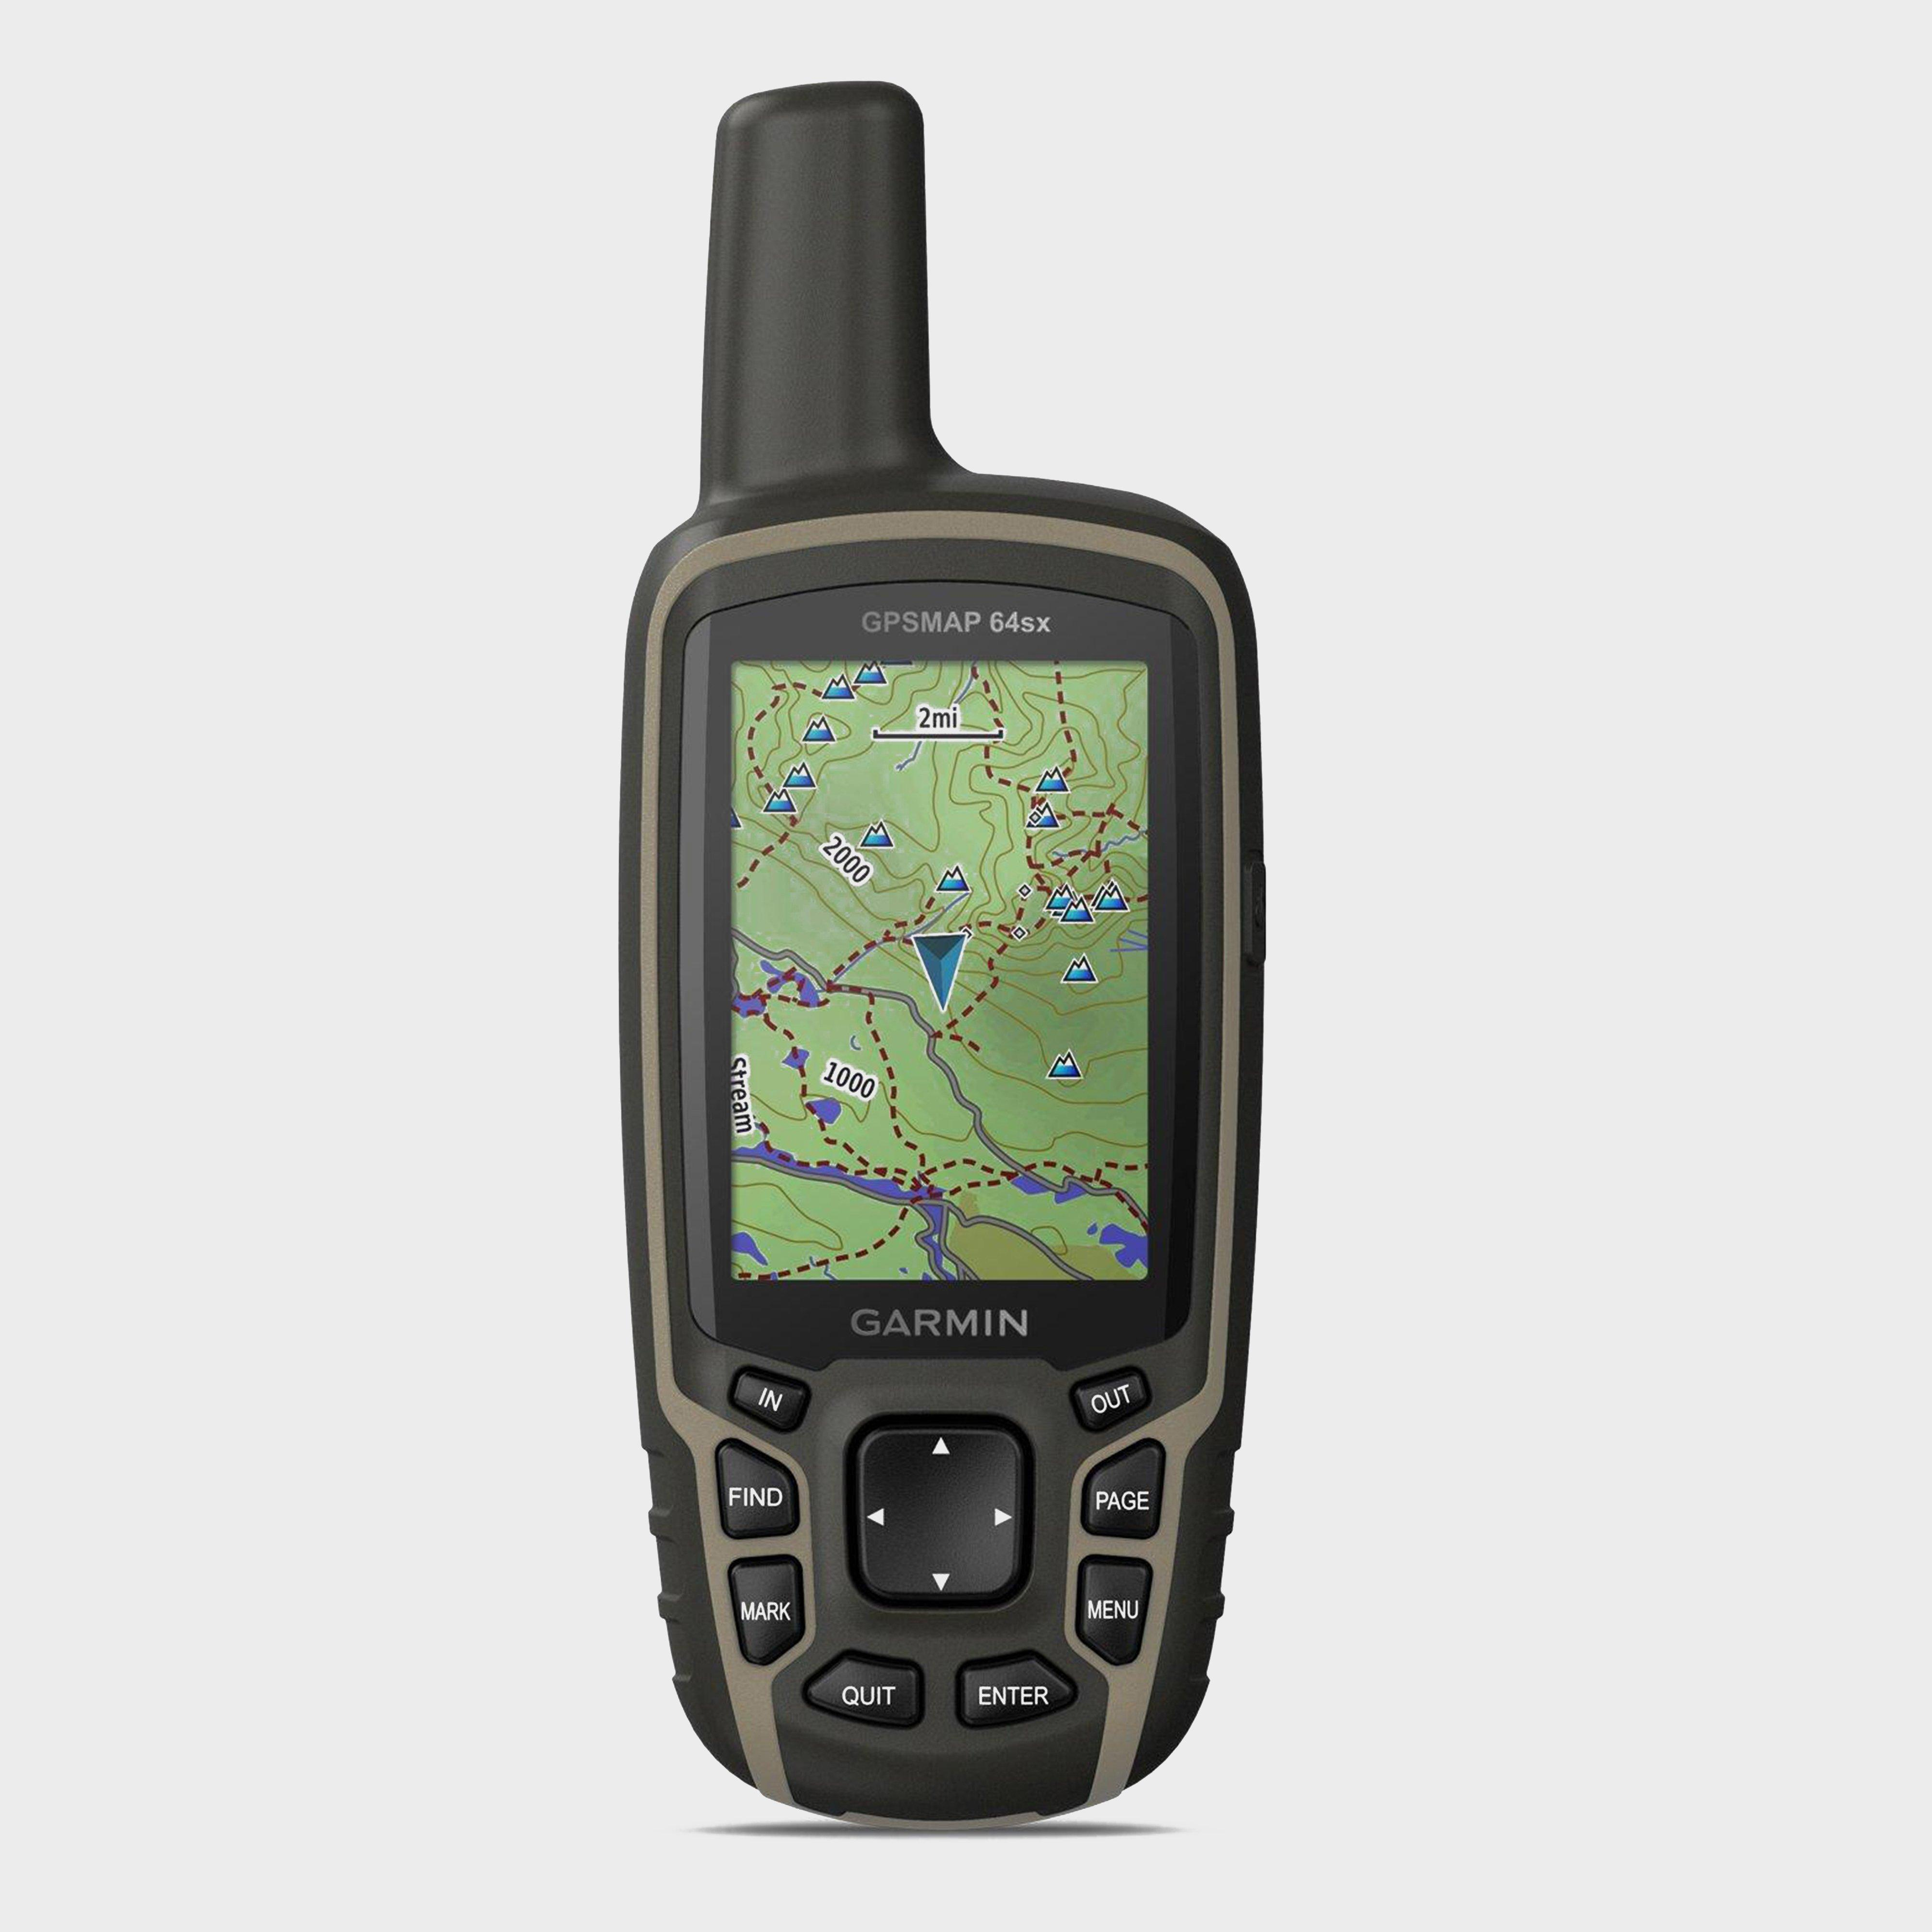 Garmin GPSMAP 64sx Handheld GPS (with BirdsEye Select Great Britain PLUS mapping), BLACK/GB